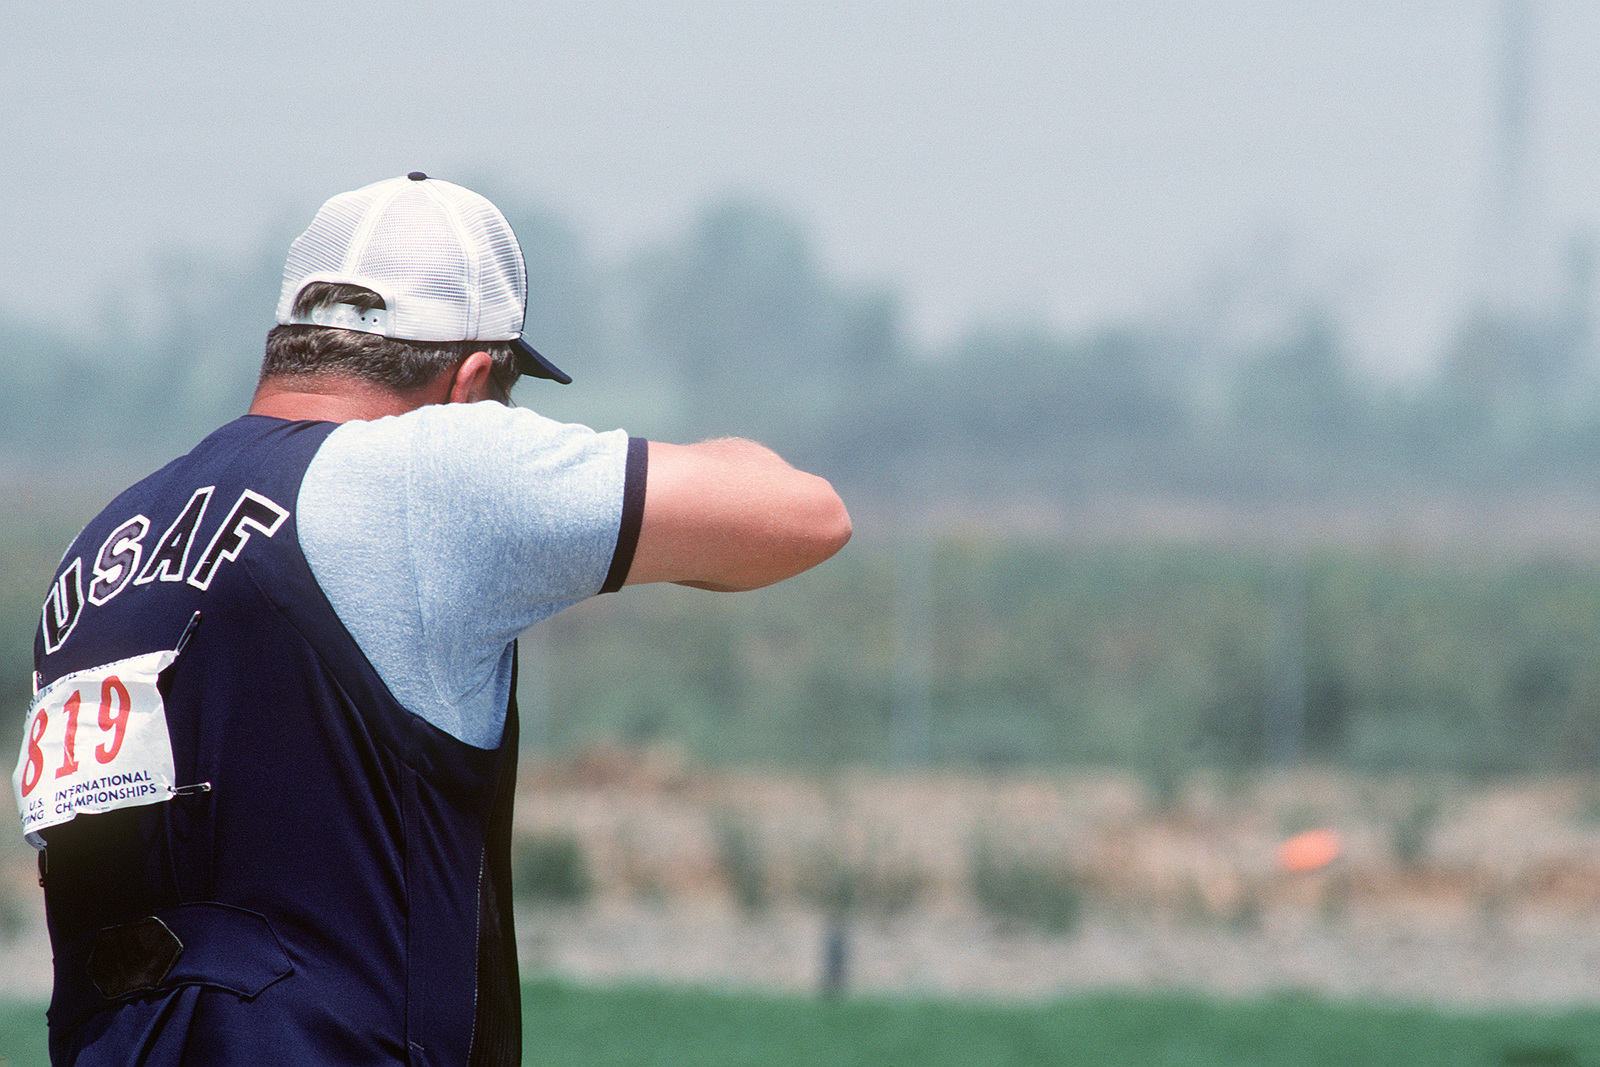 SENIOR MASTER Sergeant (SMSGT) Terry Howard, 24th Weather Squadron, Randolph Air Force Base, Texas, competes as a member of the Air Force shooting team in the qualifications for the 1984 23rd Summer Olympics Shooting Team. A member of the 1980 Olympic Shooting Team, he is a top entrant in the trap clay target shooting event